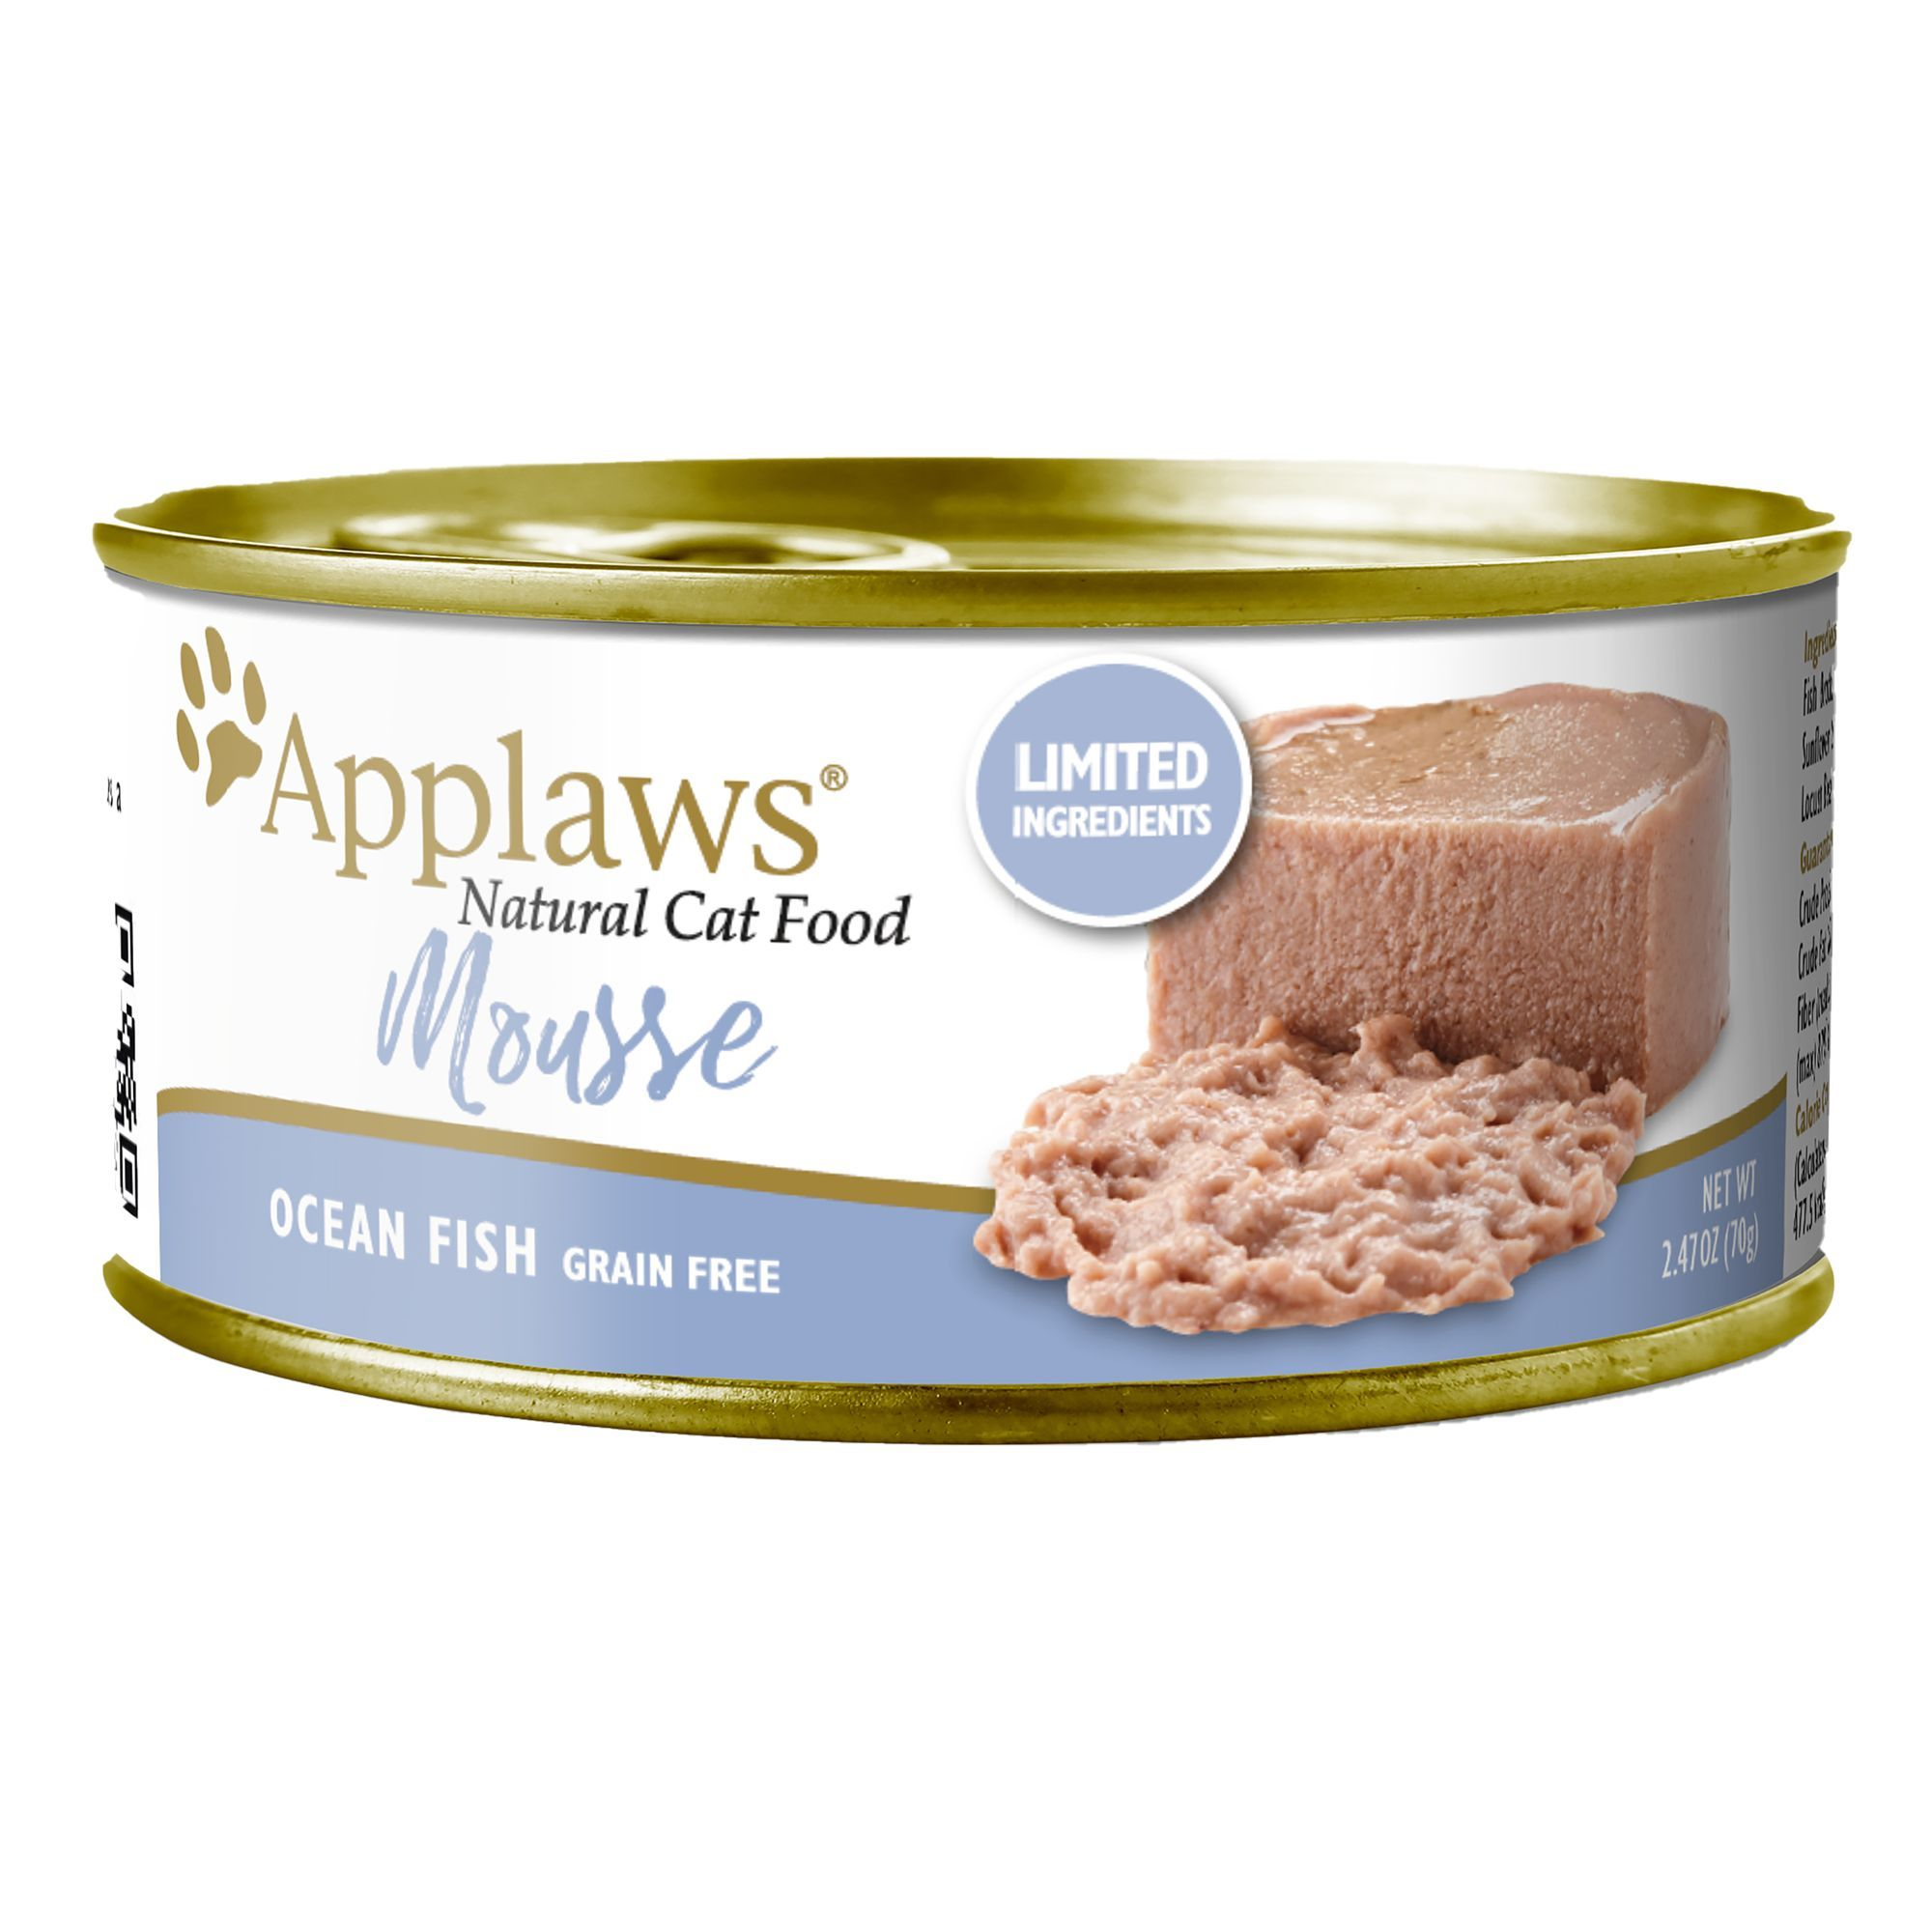 Applaws® Natural Cat Food Mousse Cat Food Grain Free